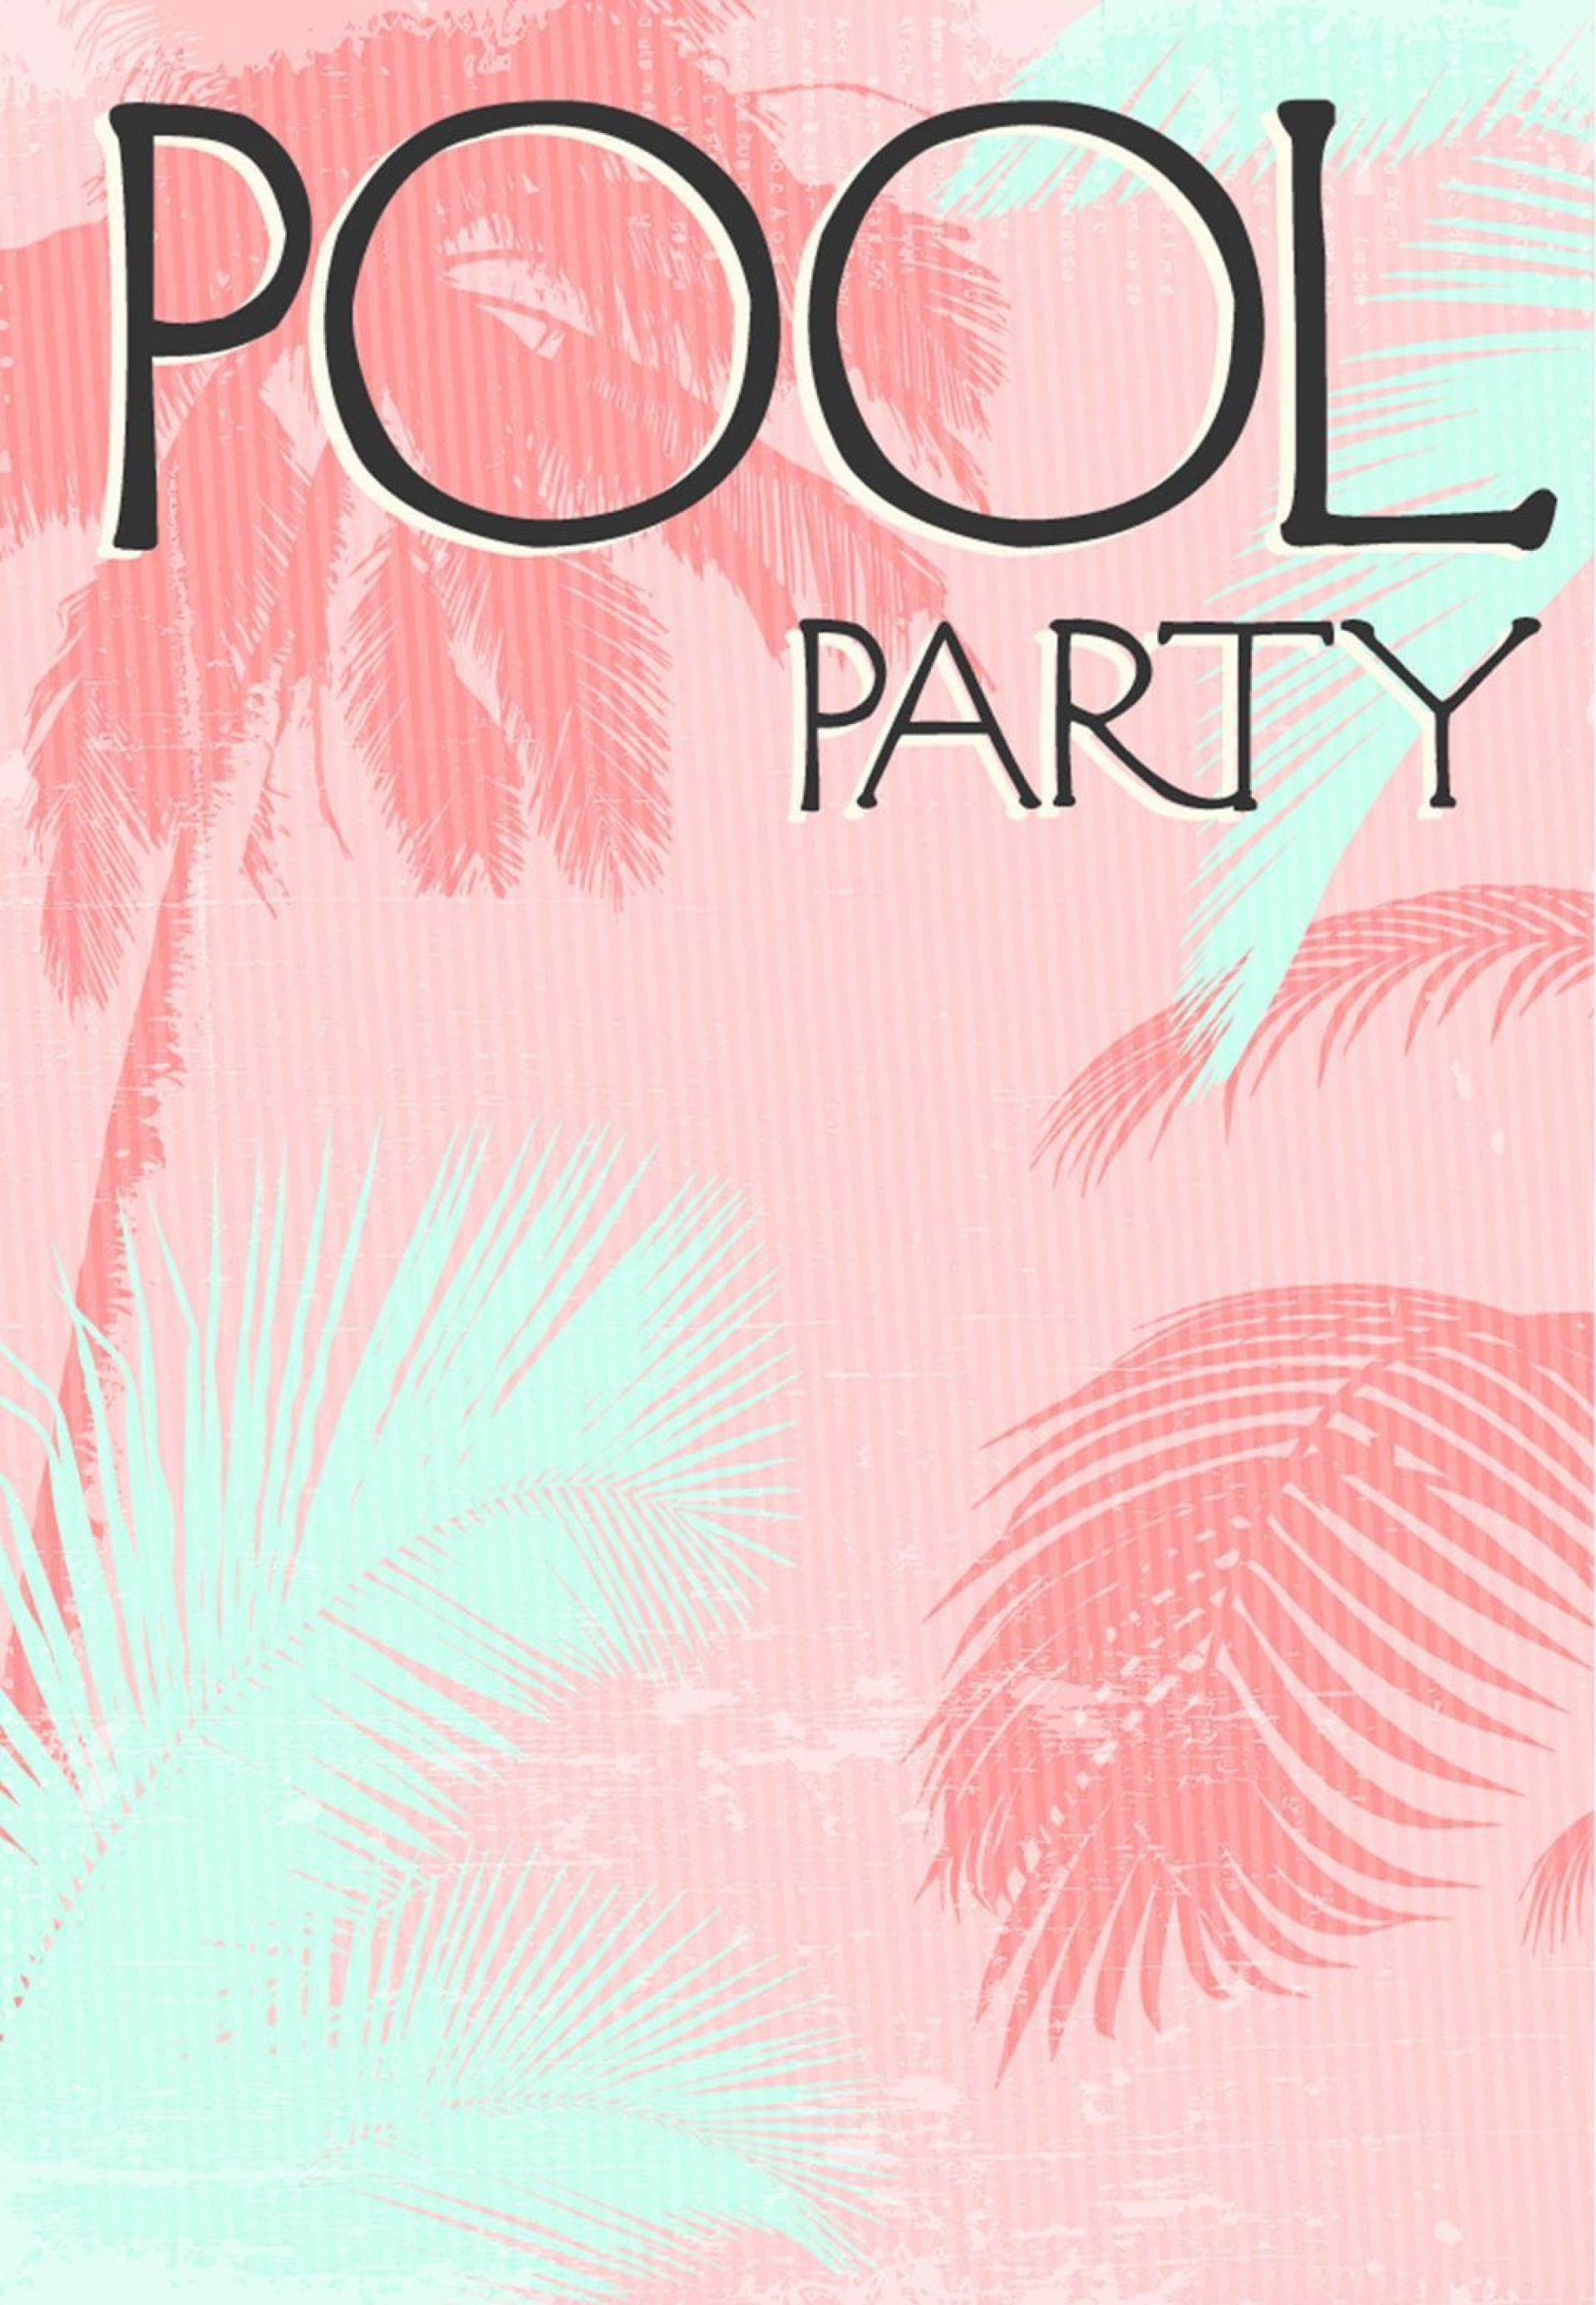 004 Unbelievable Pool Party Invitation Template Free Photo  Downloadable Printable Swimming1920